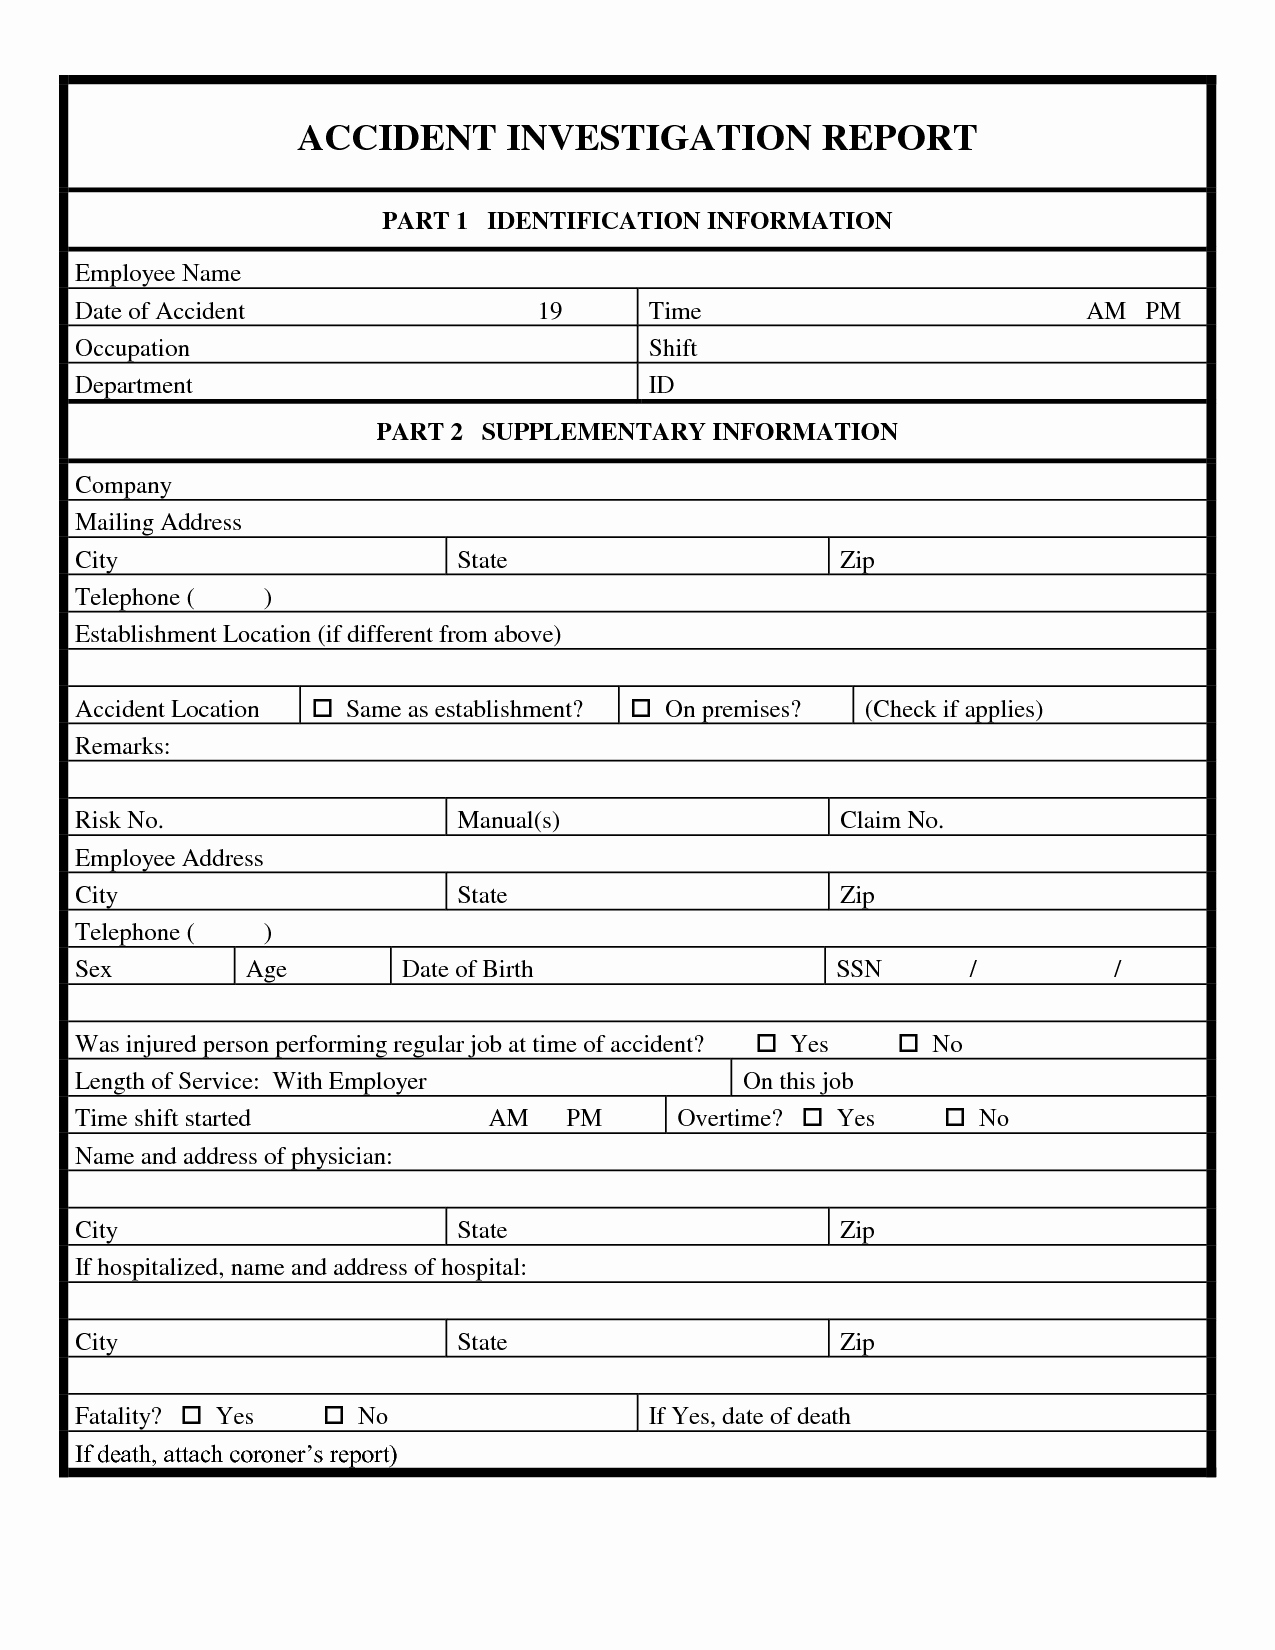 Traffic Ident Investigation Report Format Form Hse Incident With Health And Safety Incident Report Form Template